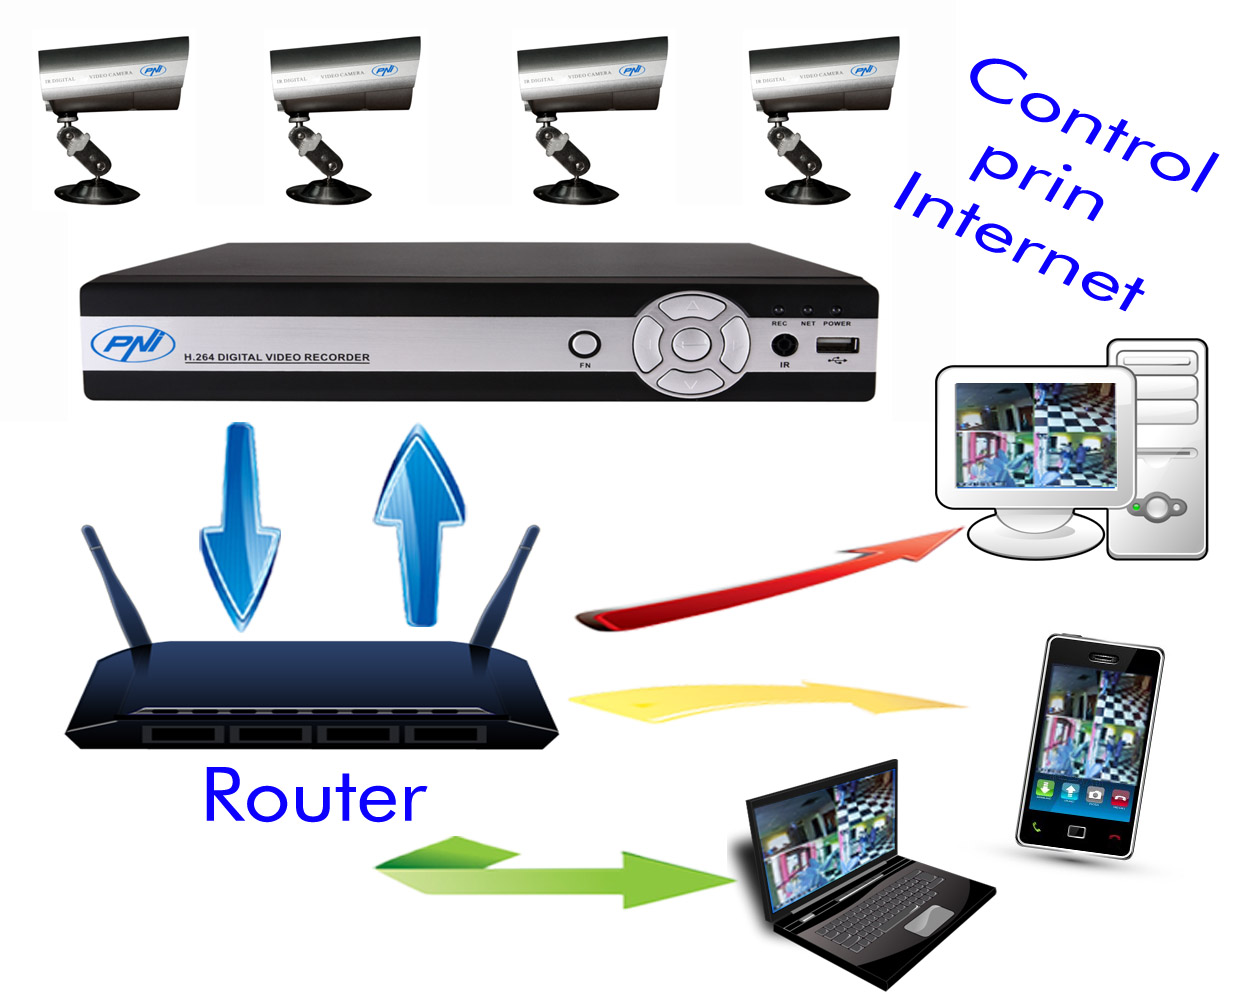 how to connect cctv dvr to internet wireless